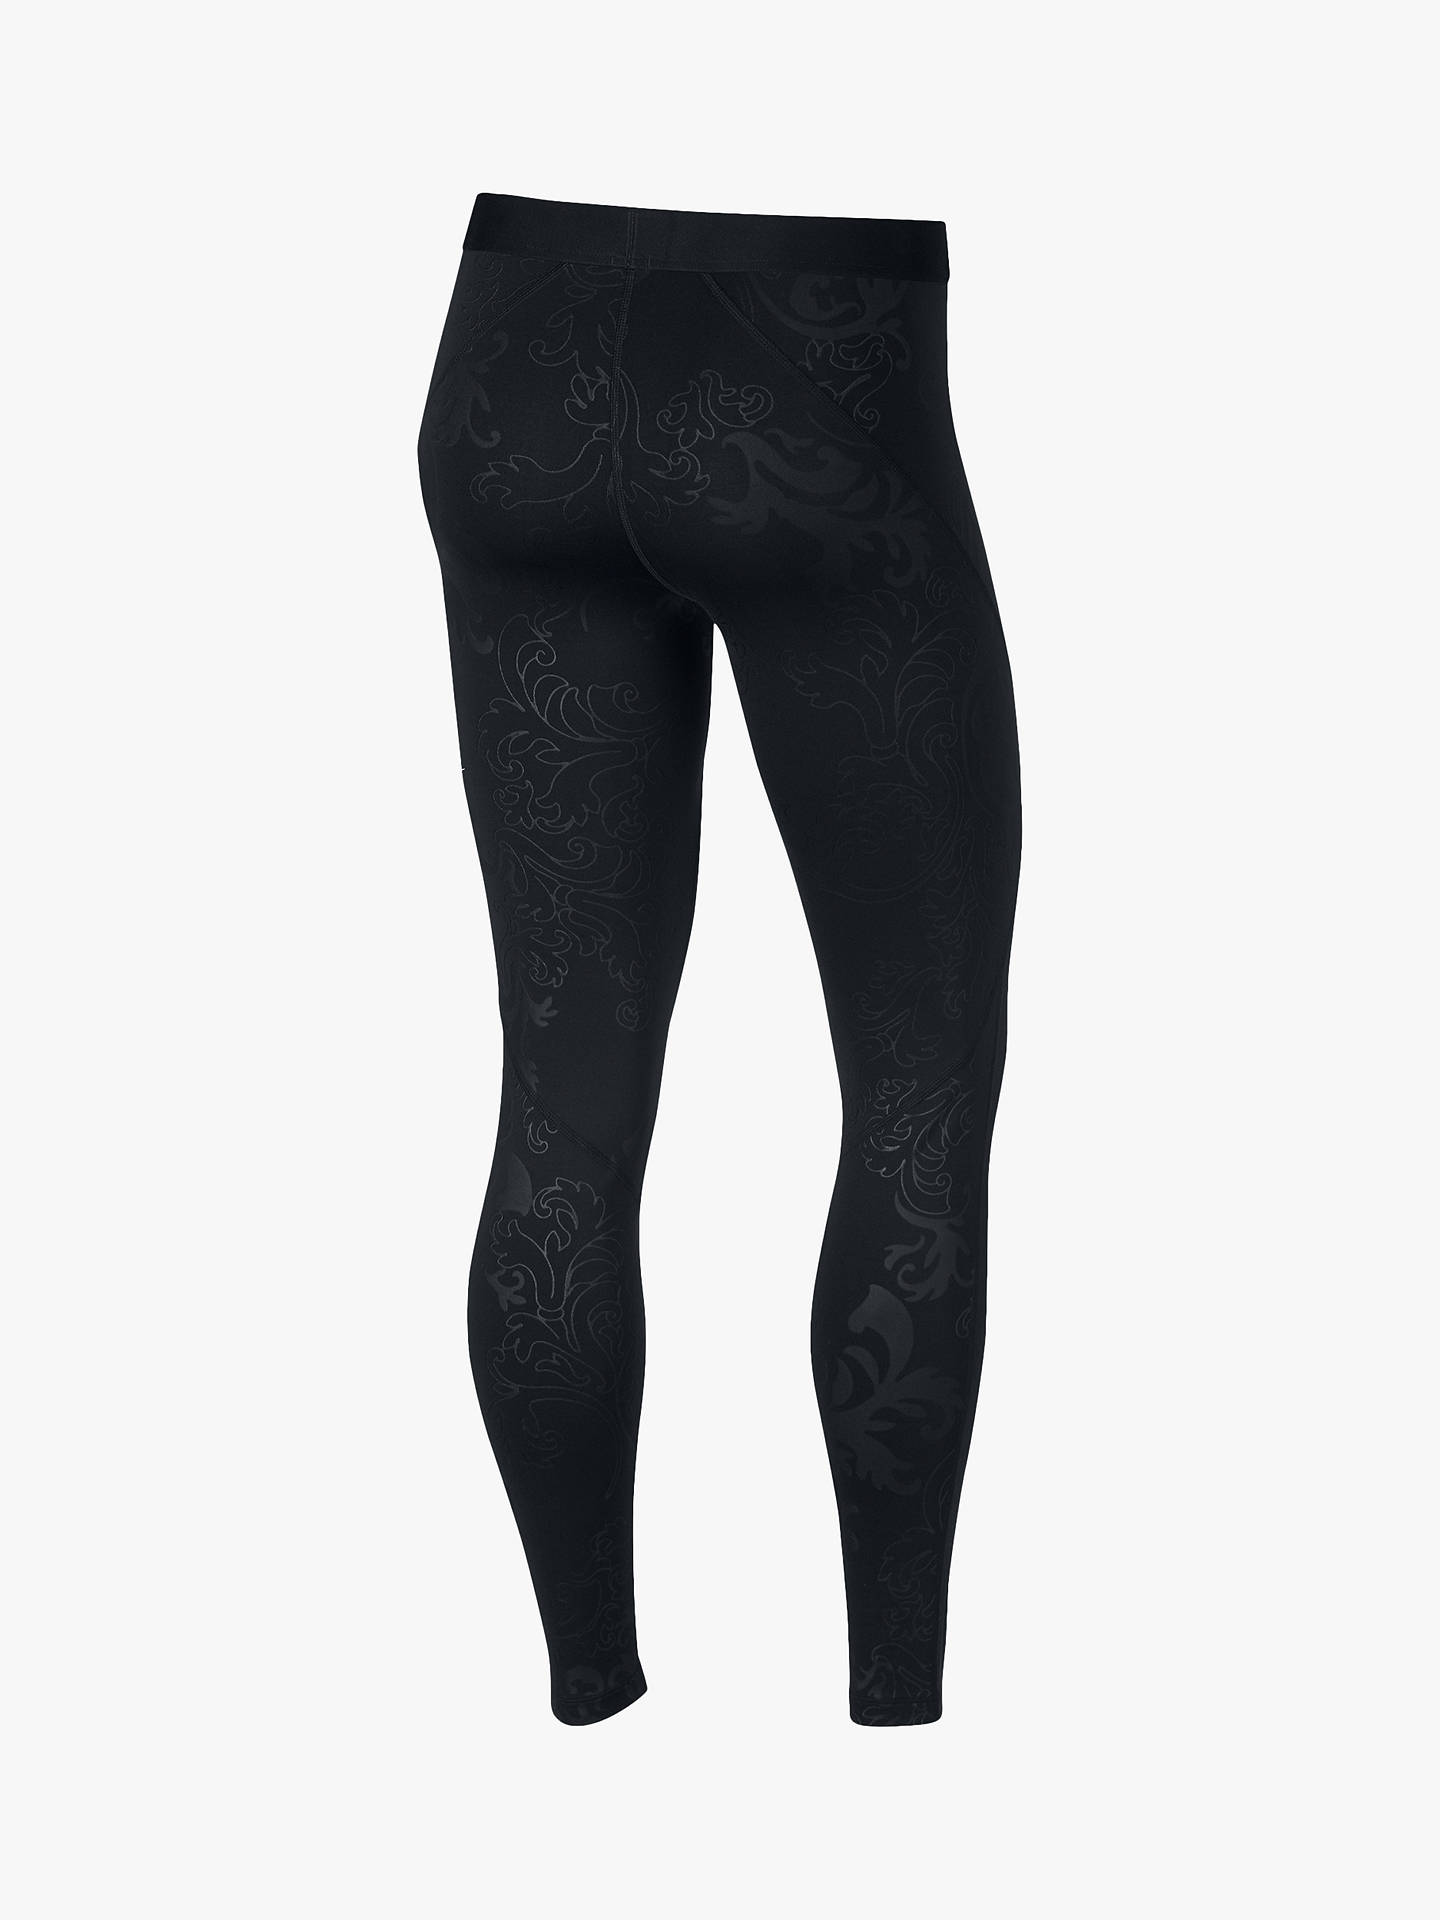 official photos 1c48f d72a8 ... Buy Nike Pro Warm Royal Print Training Tights, Black Dark Grey, L Online